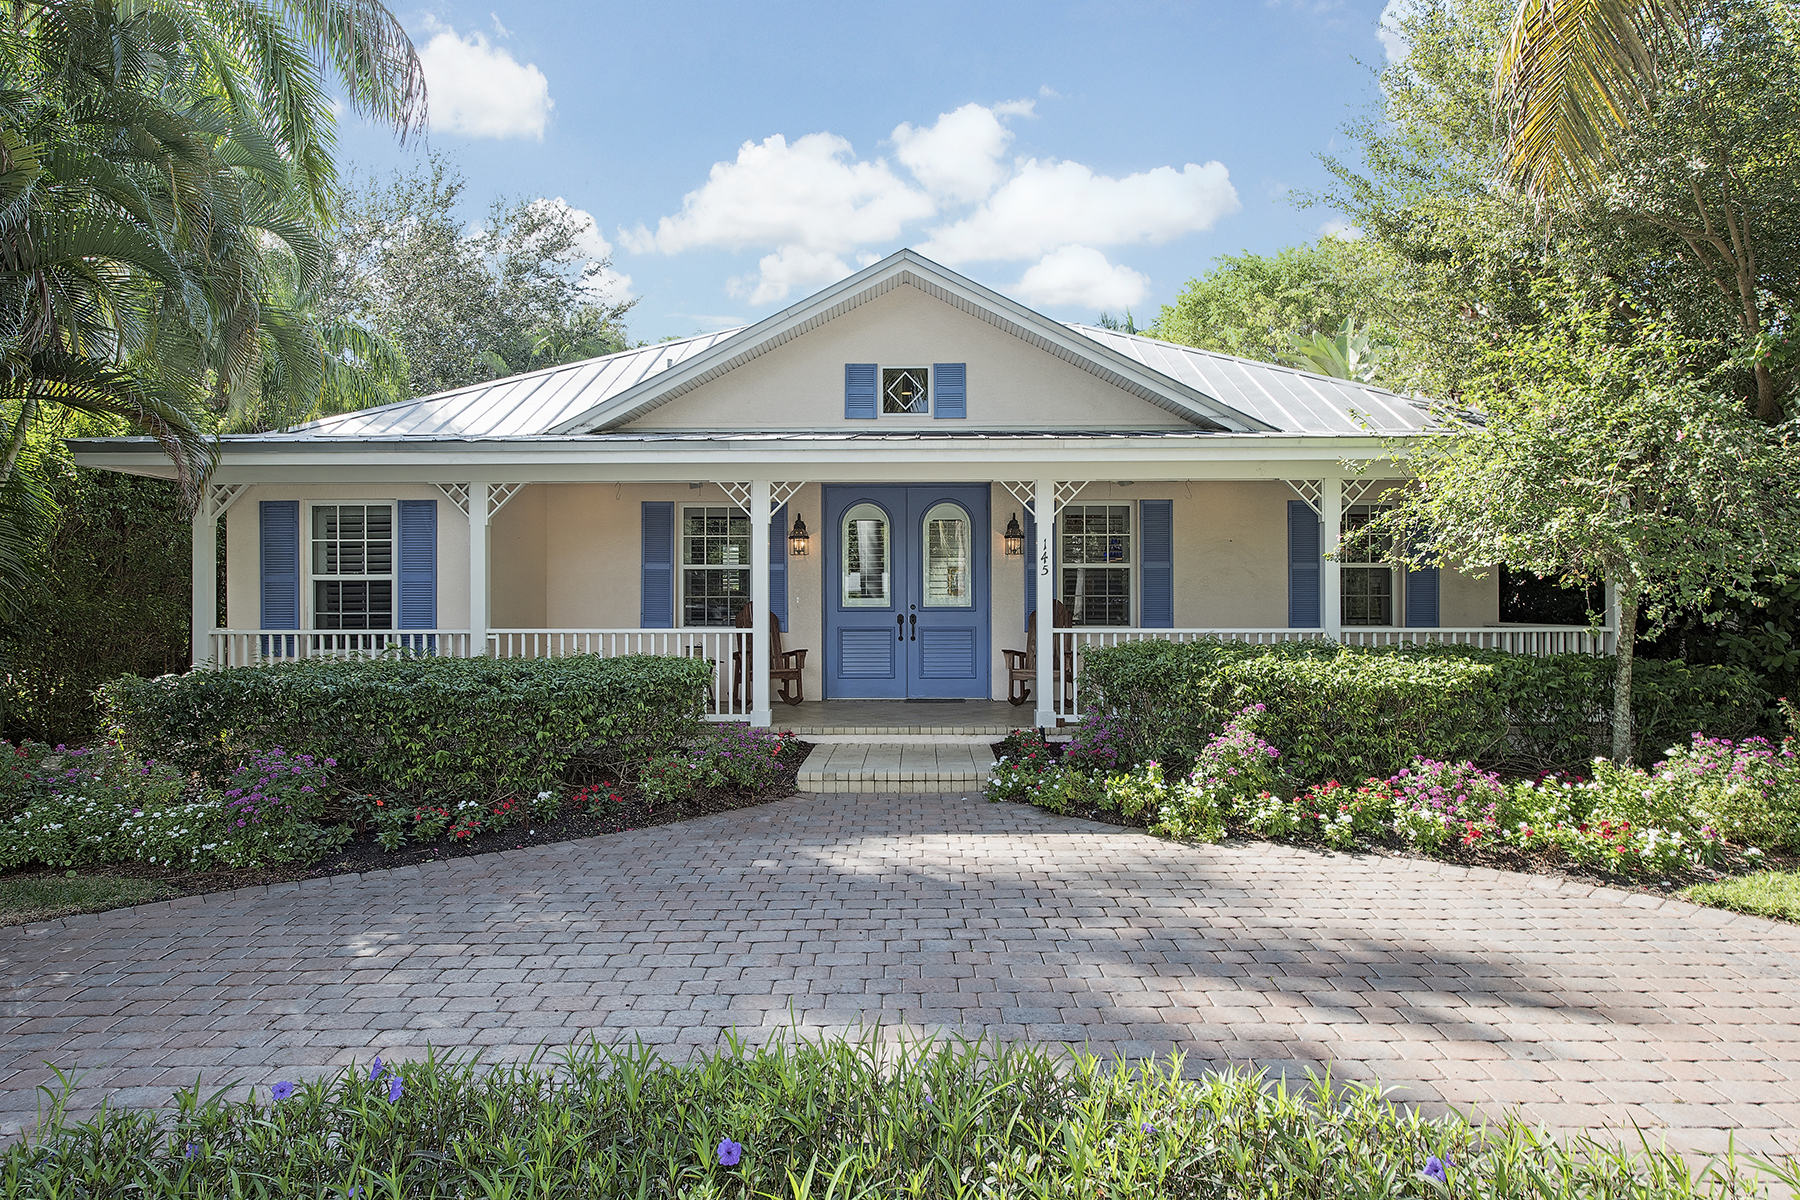 Single Family Home for Sale at OLDE NAPLES 145 6th St N Naples, Florida, 34102 United States